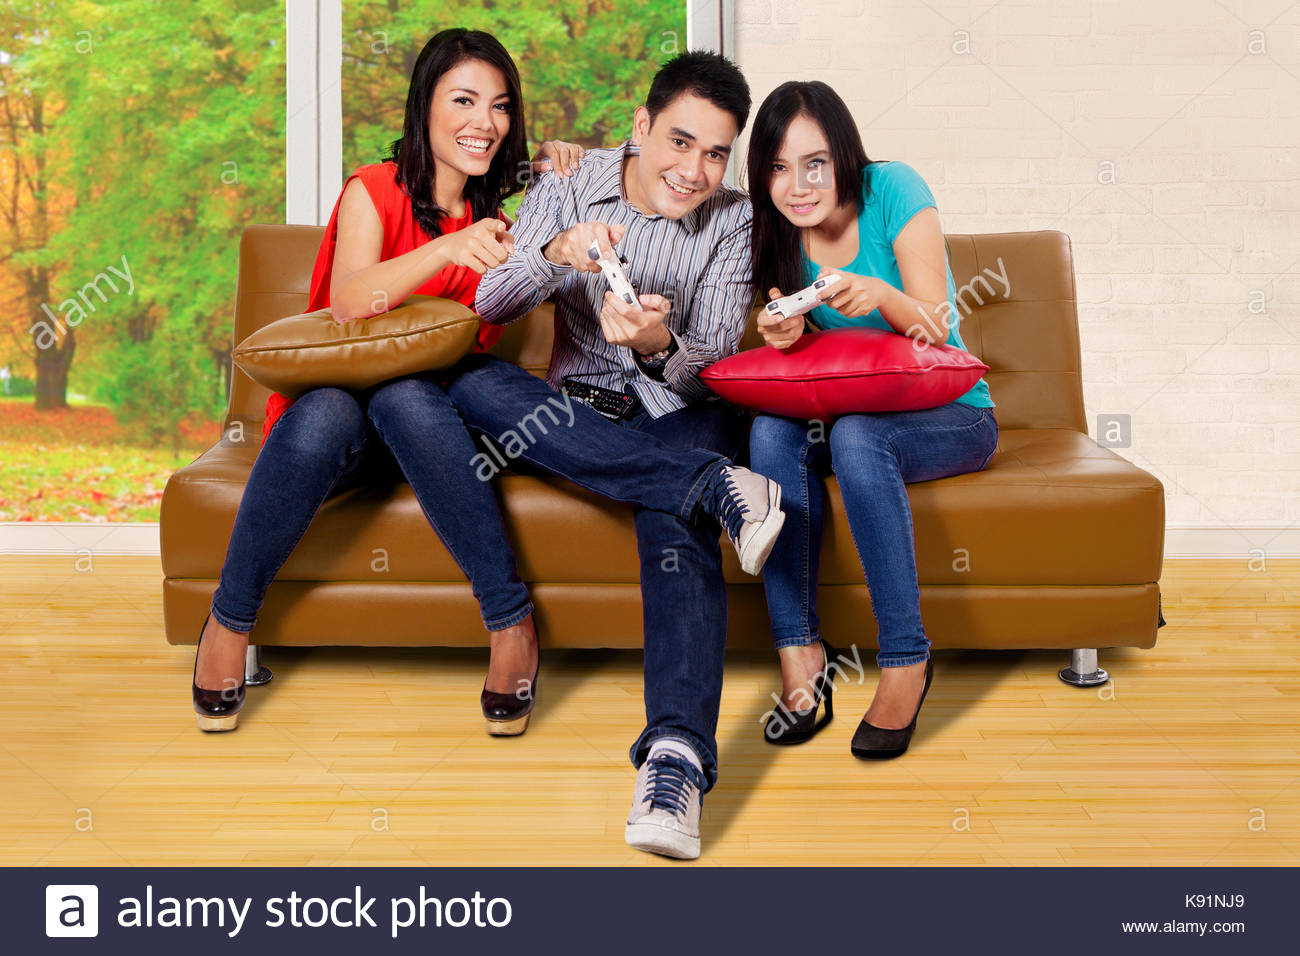 Friends Laughing Hard Stock Photos Amp Friends Laughing Hard